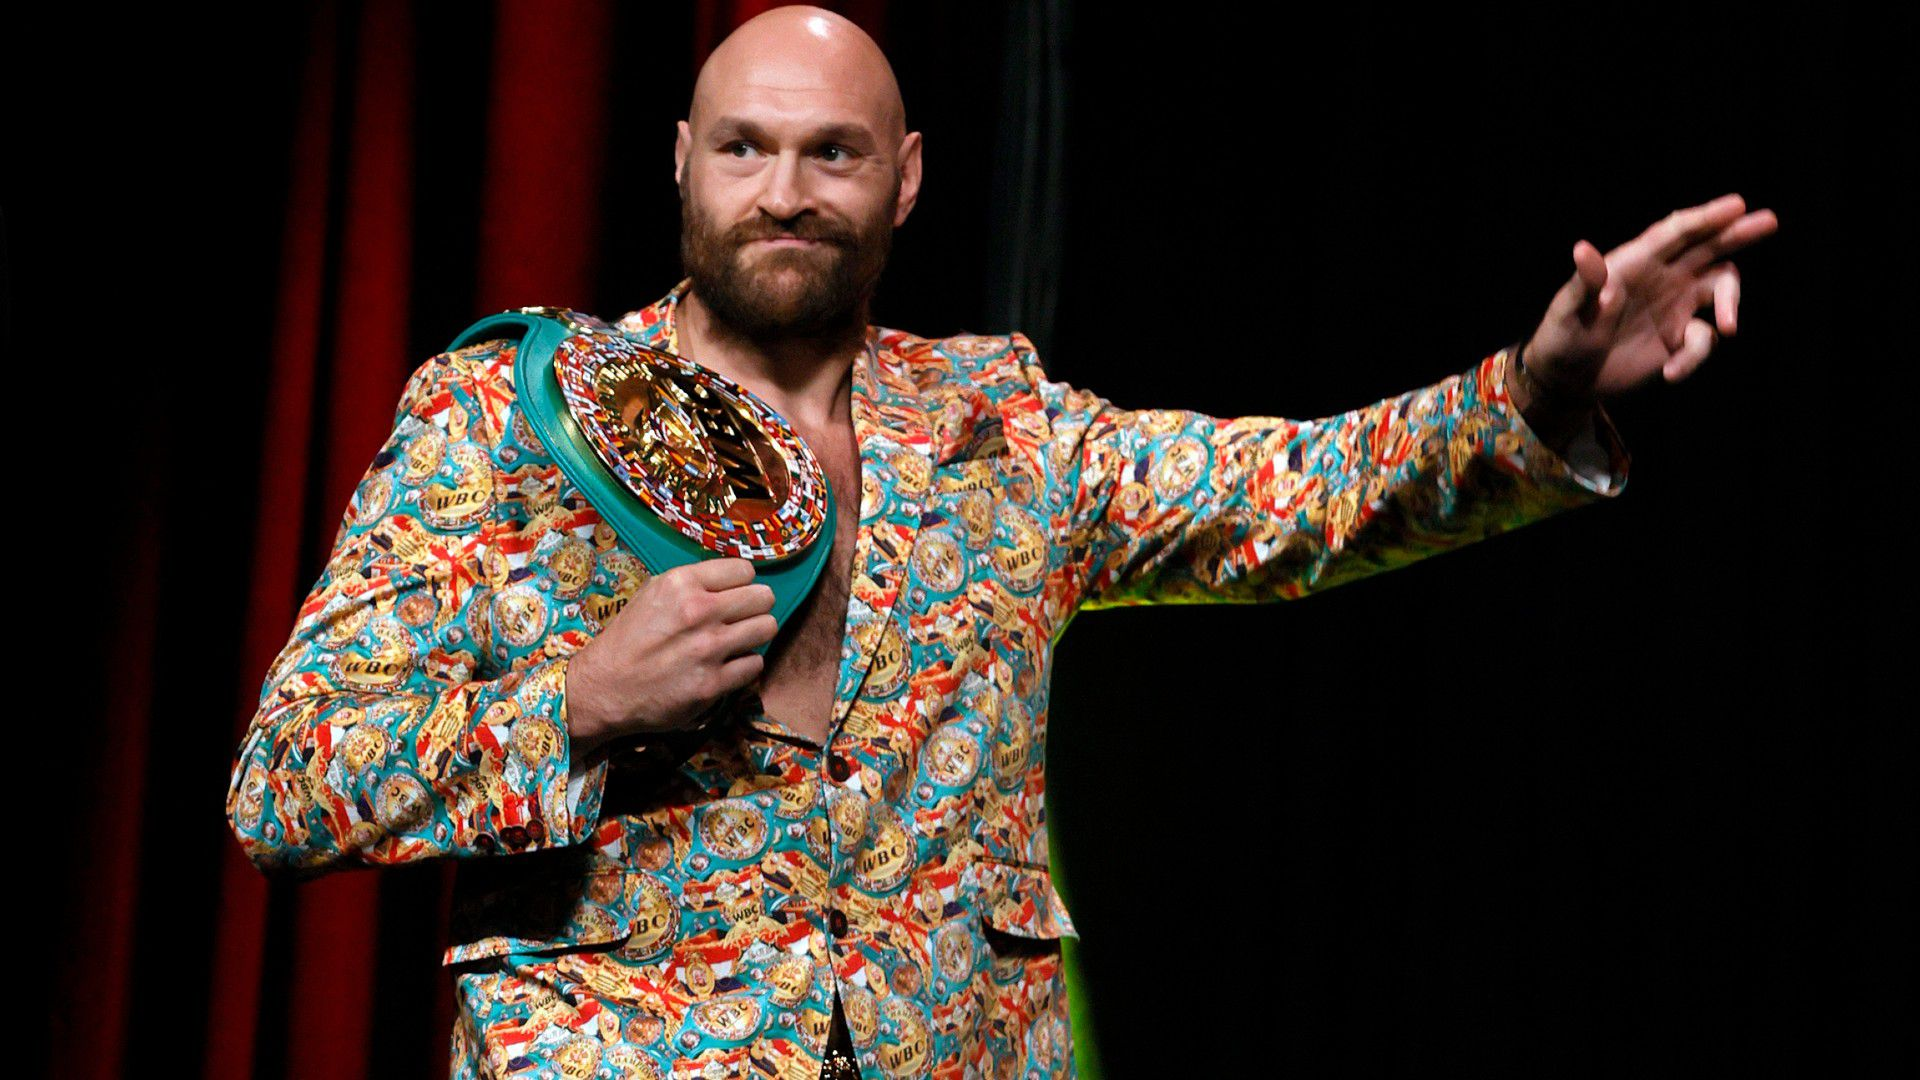 Tyson Fury, Deontay Wilder weigh in at career-heaviest size for trilogy showdown